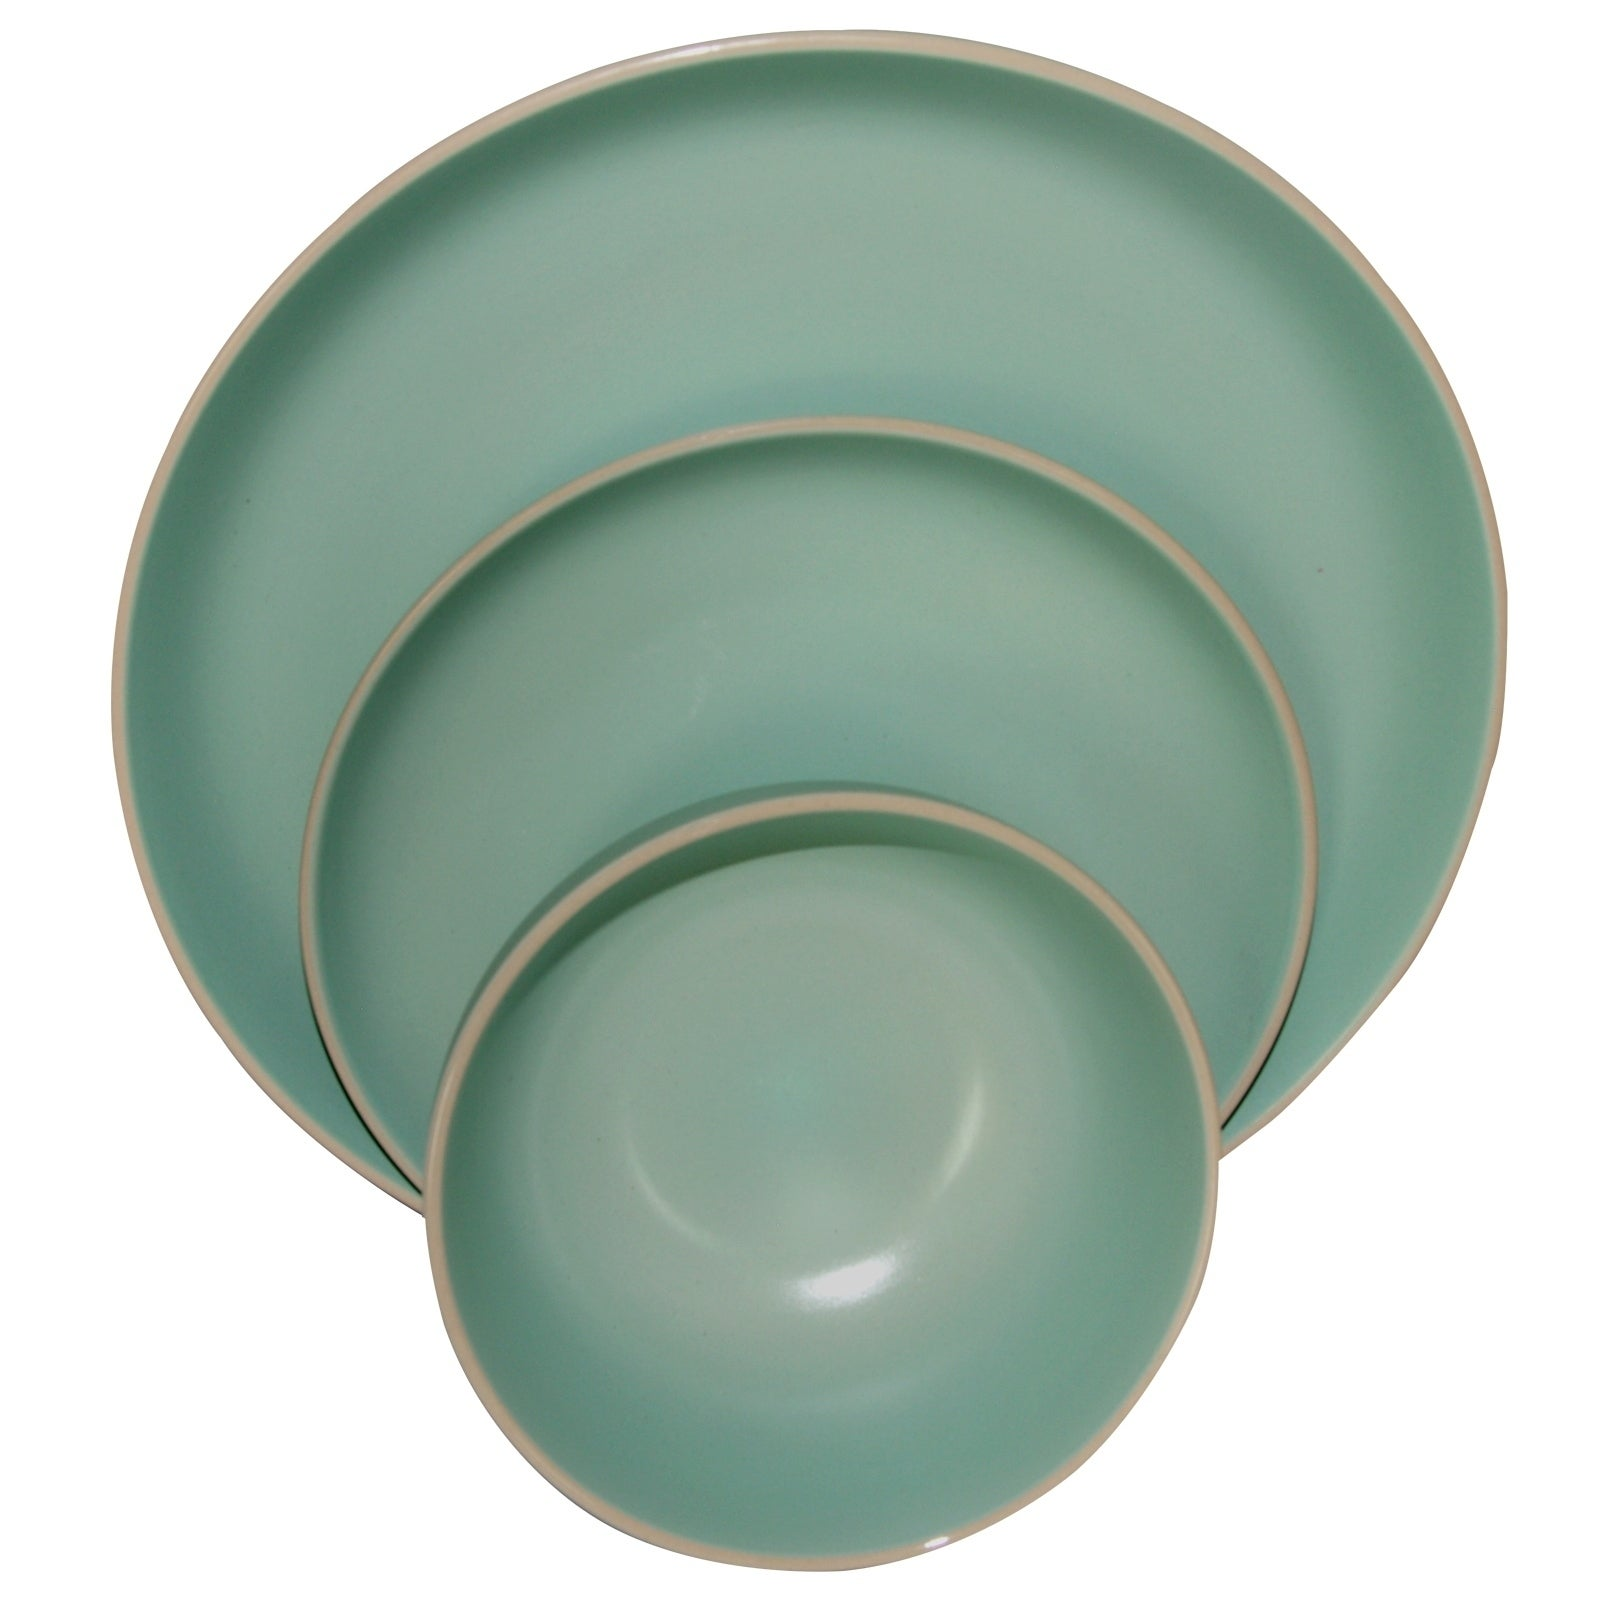 Shop Gibson Home Rockaway 12-Piece Stoneware Dinnerware Set In Matte Teal - Free Shipping Today - Overstock.com - 18107591  sc 1 st  Overstock & Shop Gibson Home Rockaway 12-Piece Stoneware Dinnerware Set In Matte ...